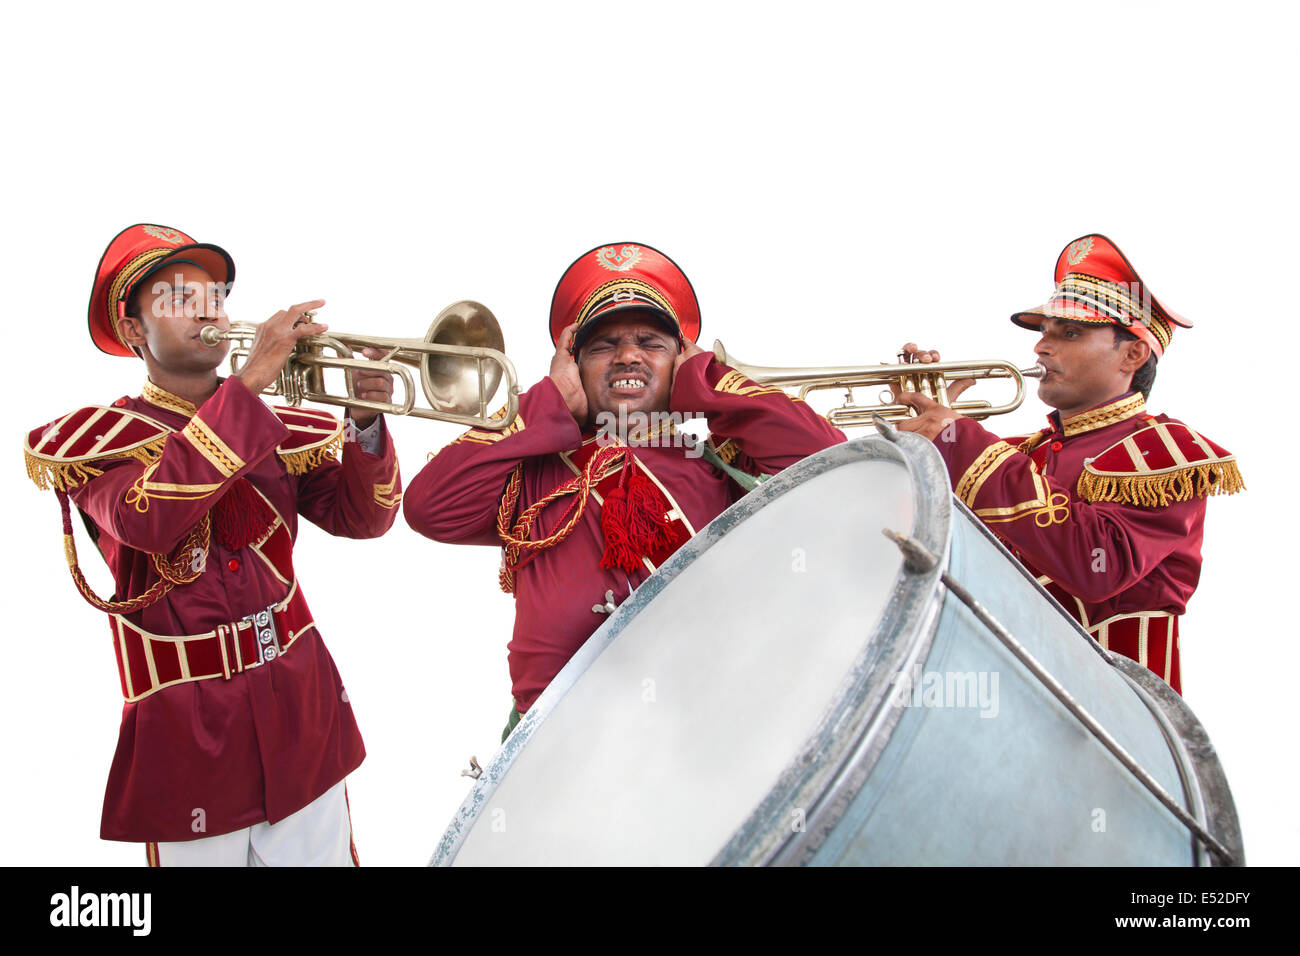 Bandwala shielding his ears from the noise - Stock Image